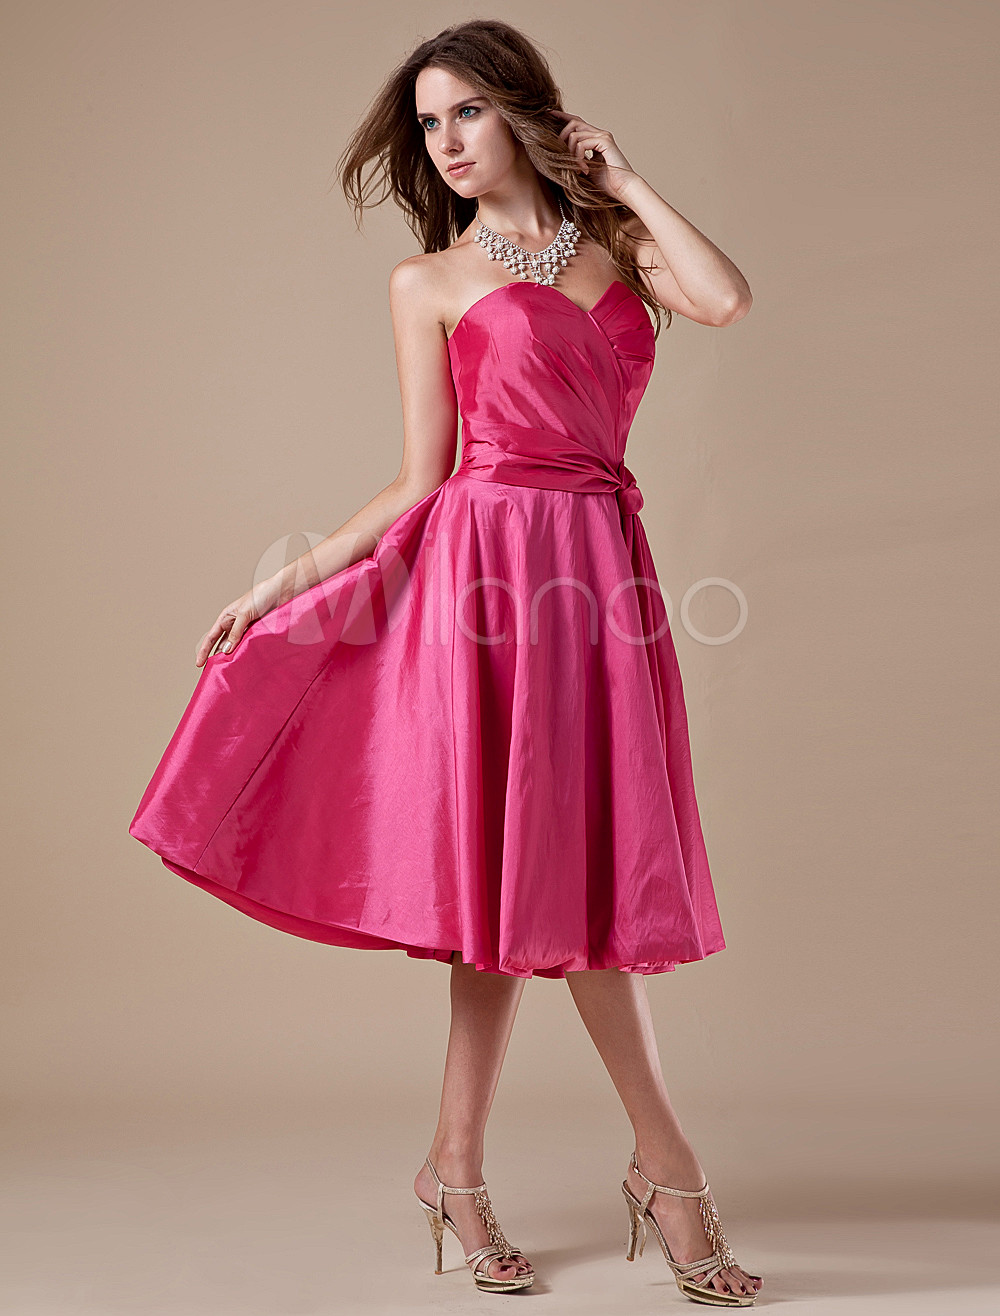 Cute Fuchsia Taffeta Tea Length A-line Bridesmaid Dress